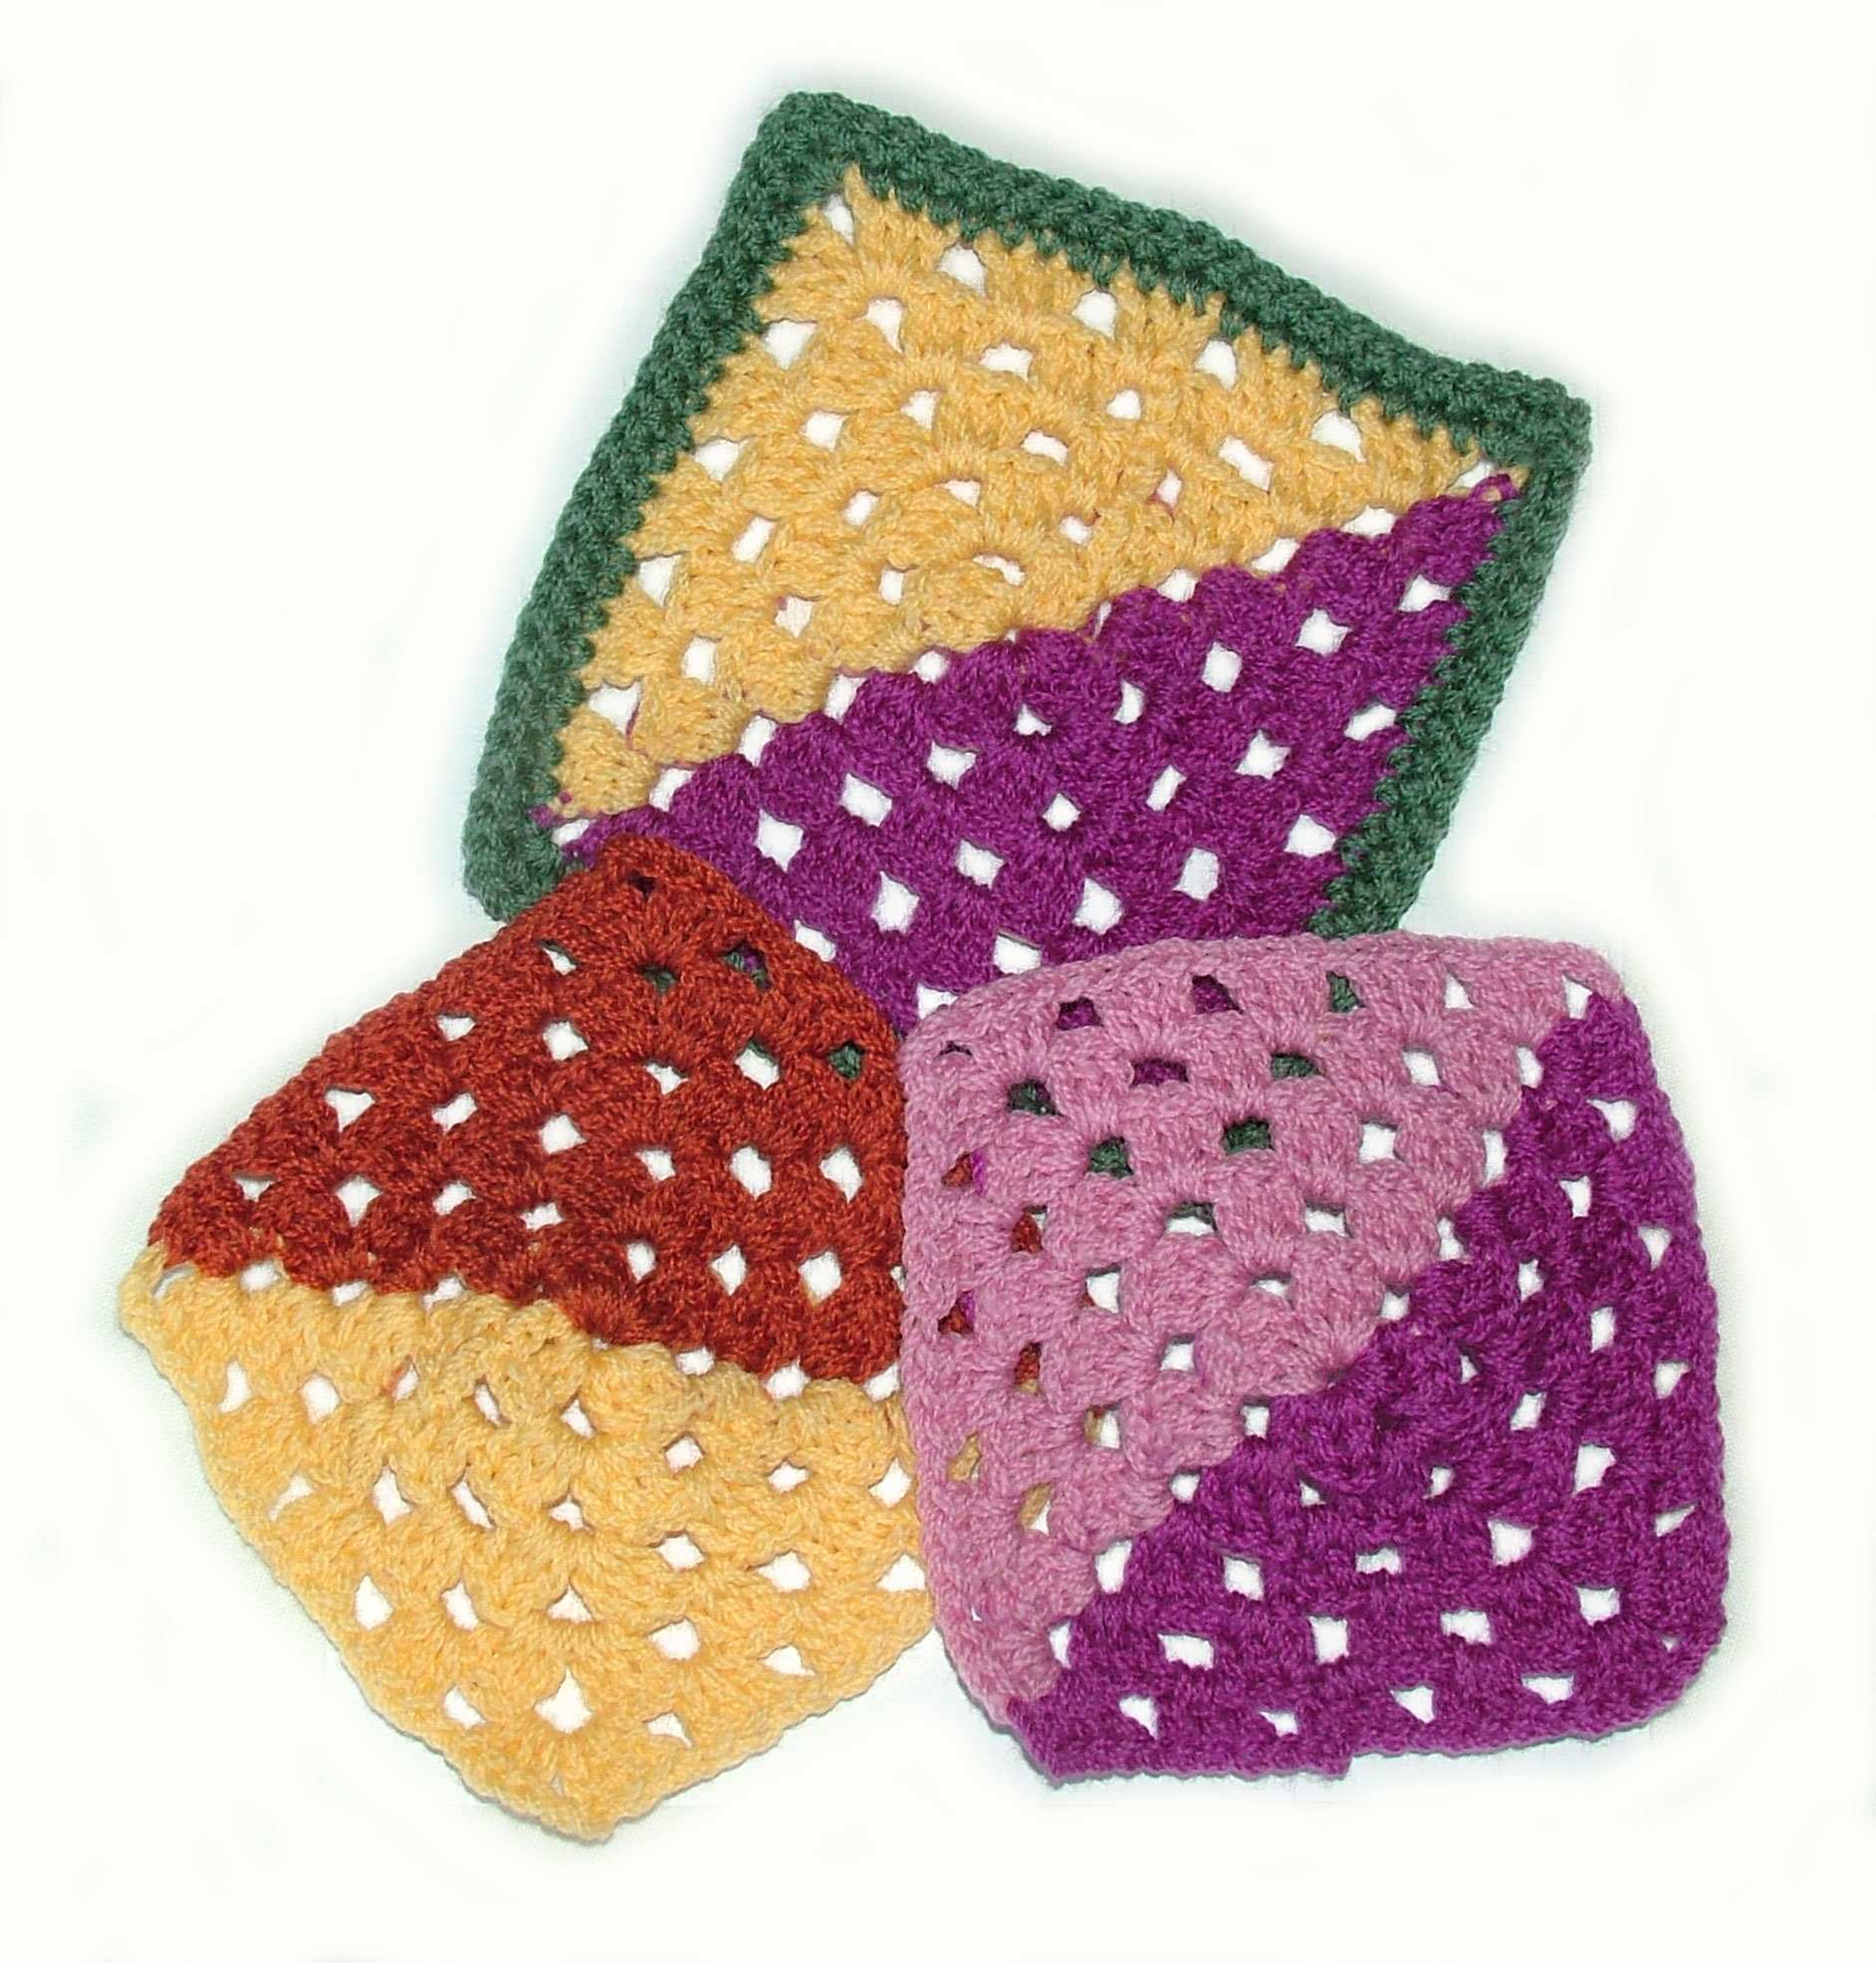 Granny Square Variations - Free Crochet Patterns for Granny Square